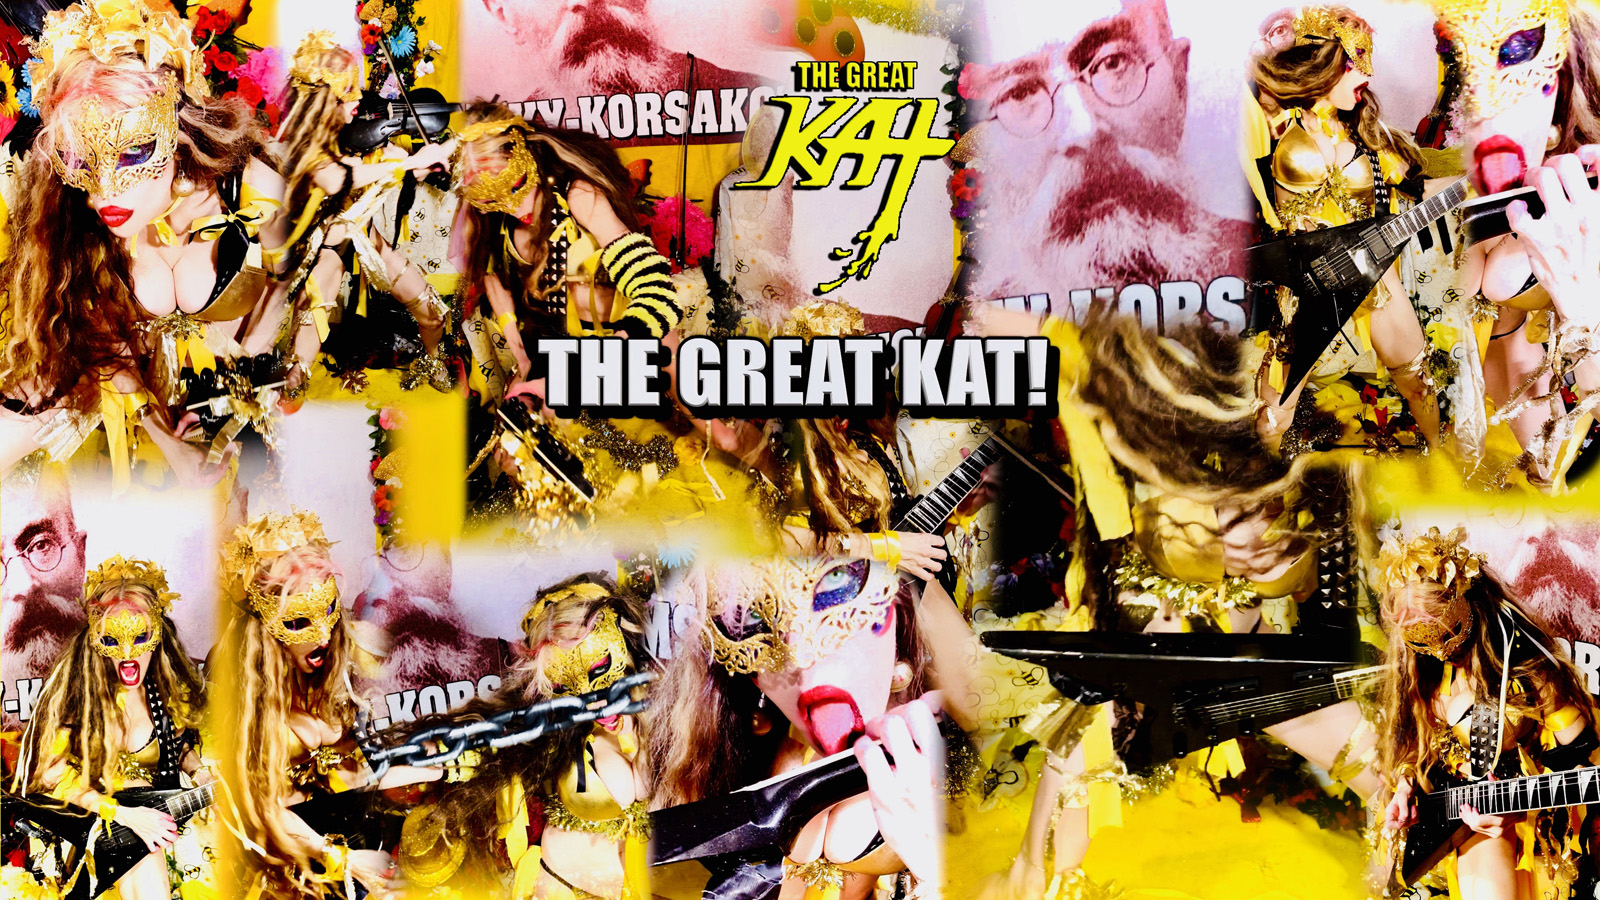 """THE GREAT KAT! From """"CHEF GREAT KAT COOKS RUSSIAN CAVIAR AND BLINI WITH RIMSKY-KORSAKOV"""" VIDEO!!"""